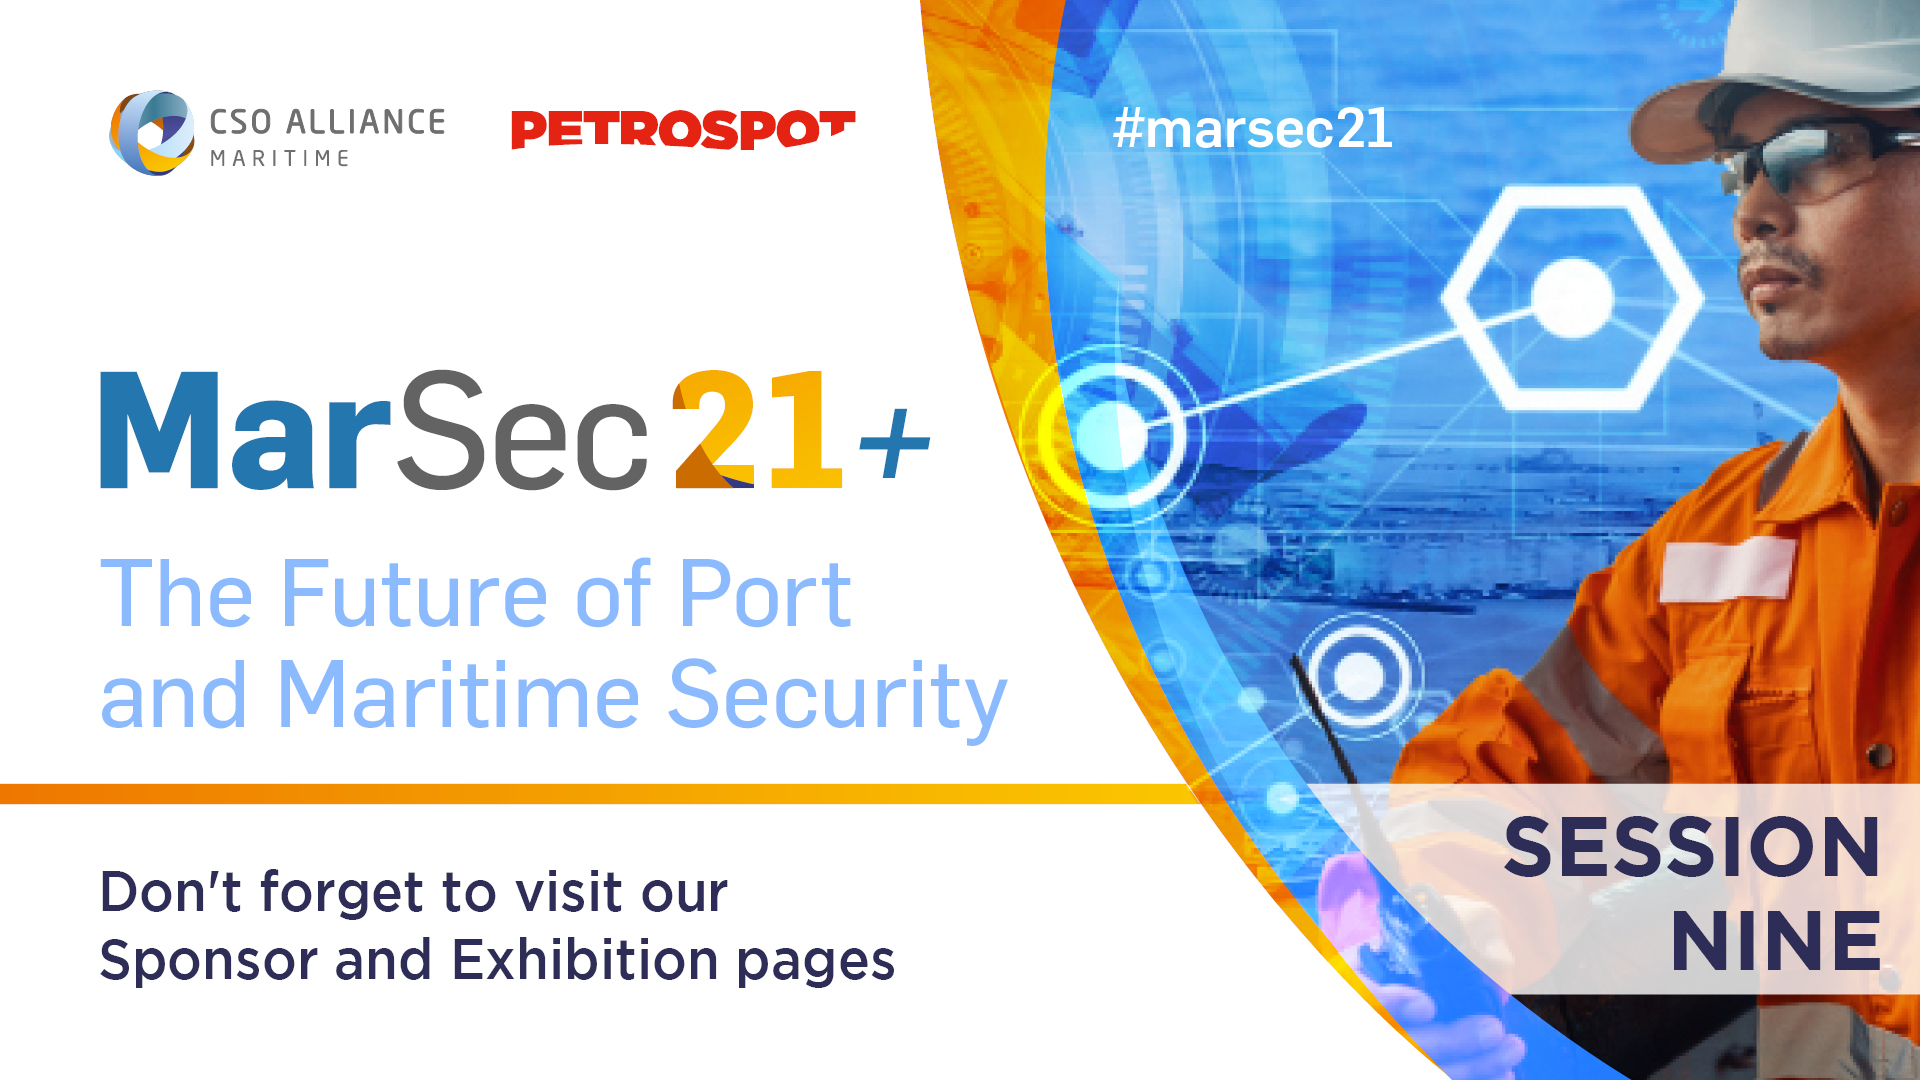 MarSec 21+ Session 9: Addressing Vessel and Port Cyber Security